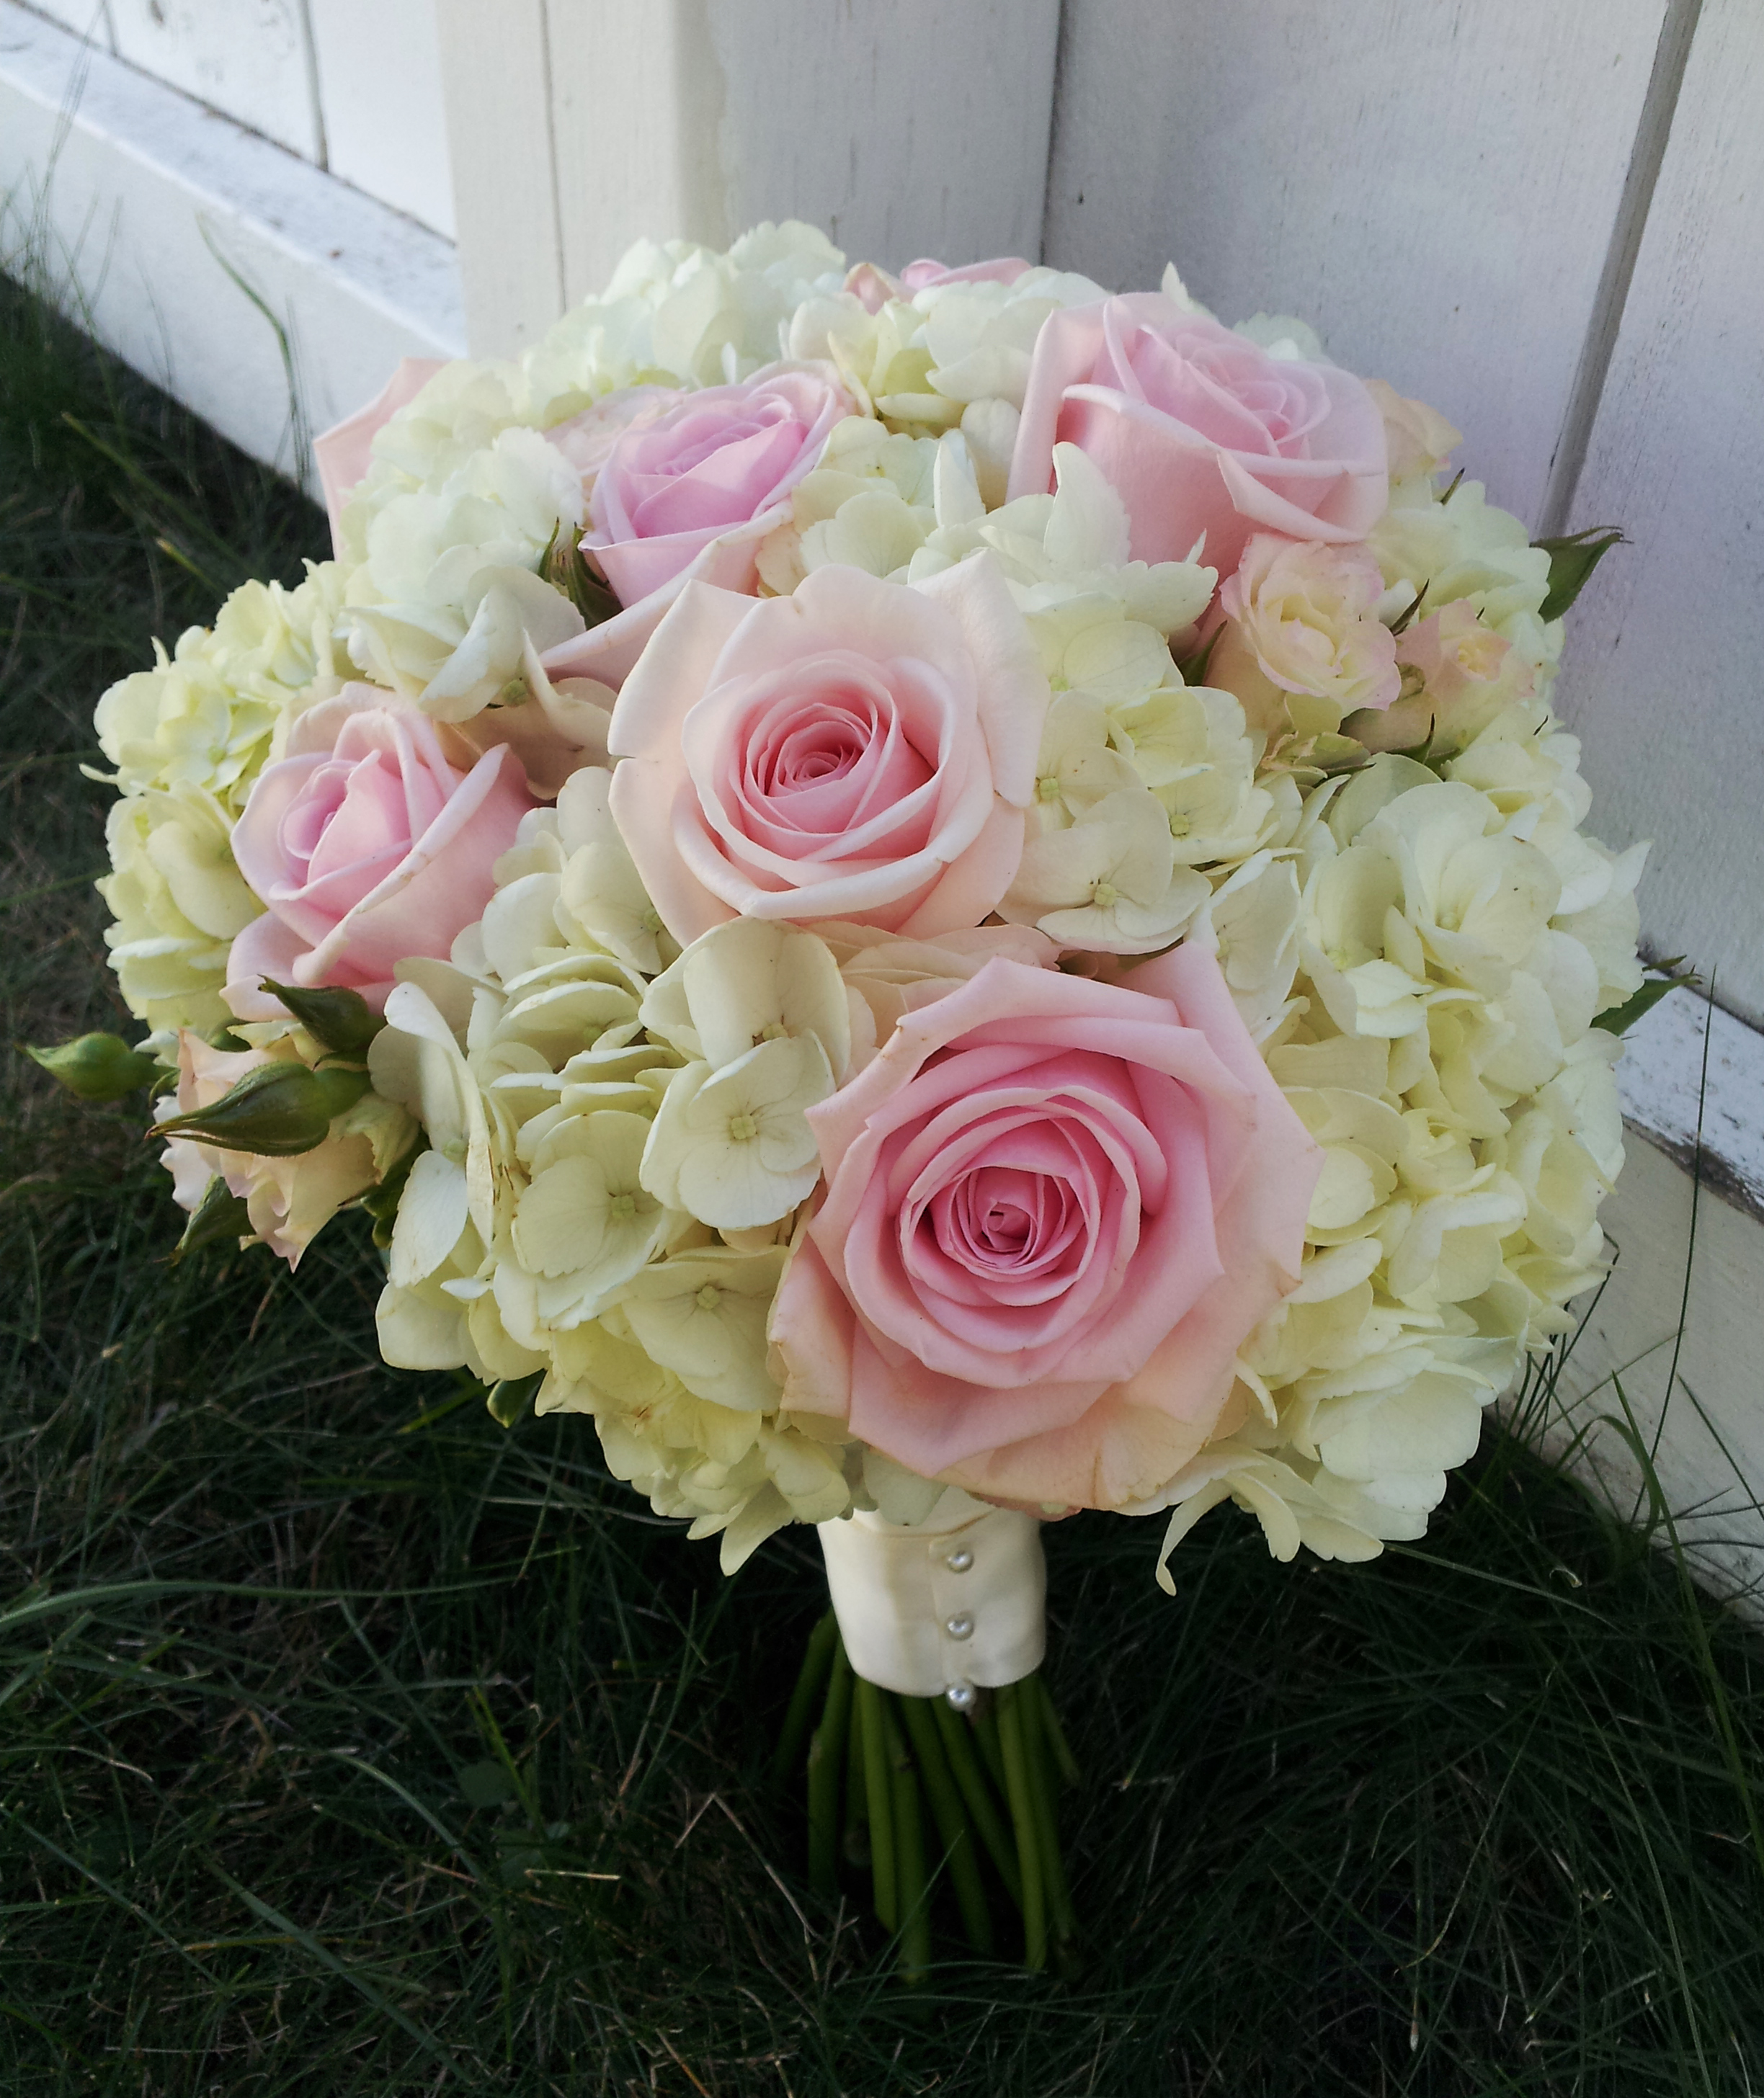 Wedding White Hydrangea: WHITE HYDRANGEA WITH SOFT PINK SPRAY ROSES WEDDING BOUQUET